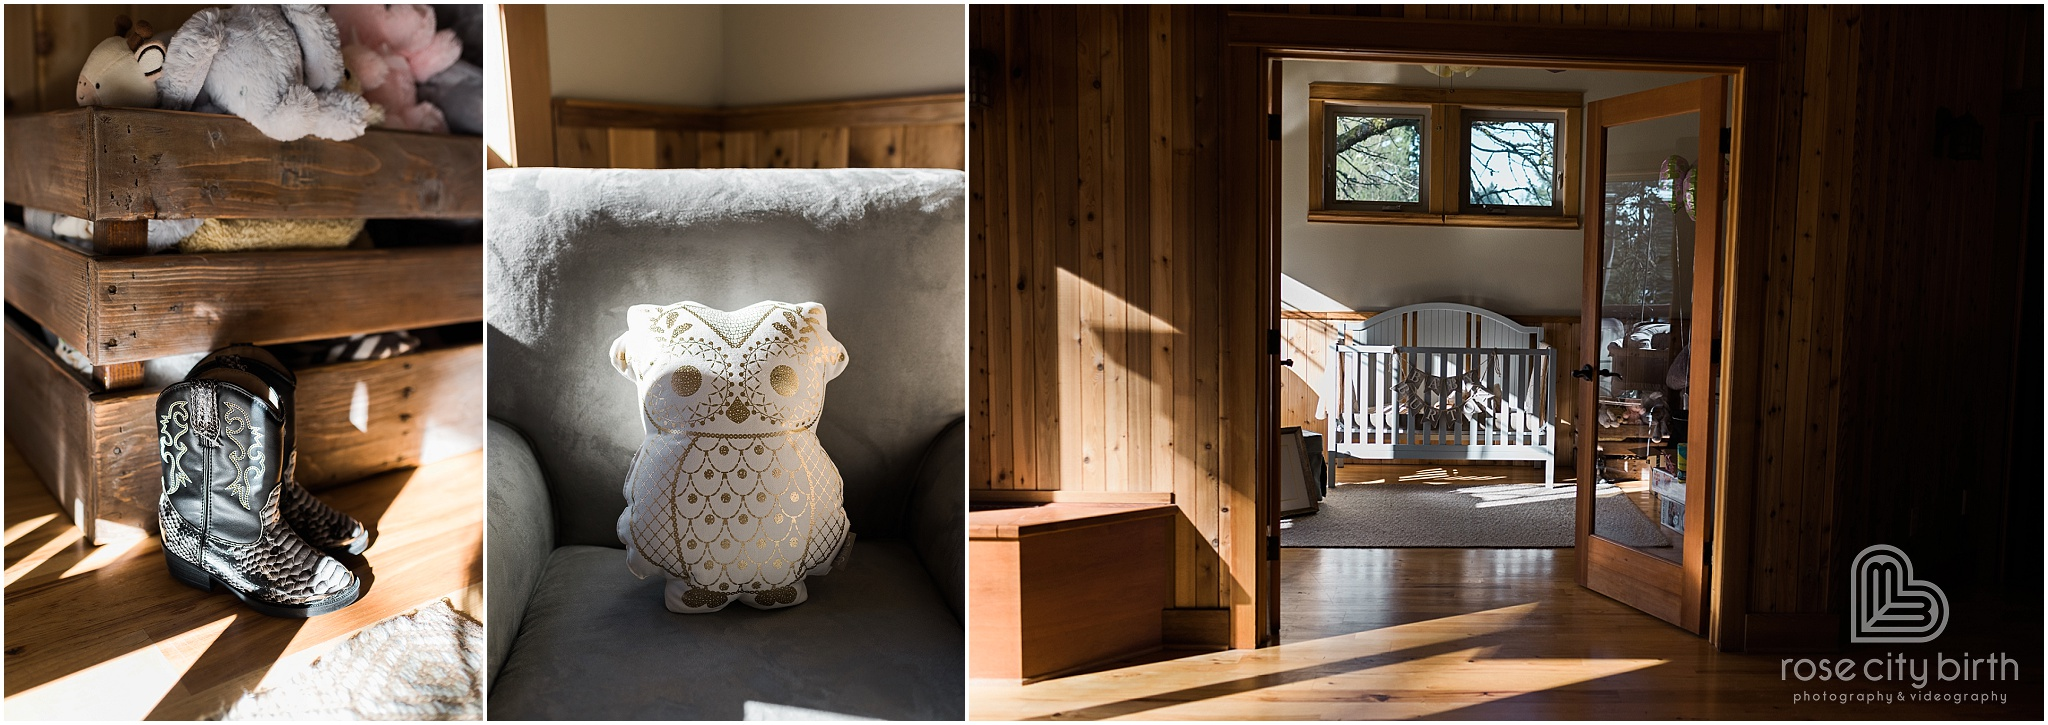 Owl, boots and view of nursery for maternity photos in Camas Washington and Portland Oregon.